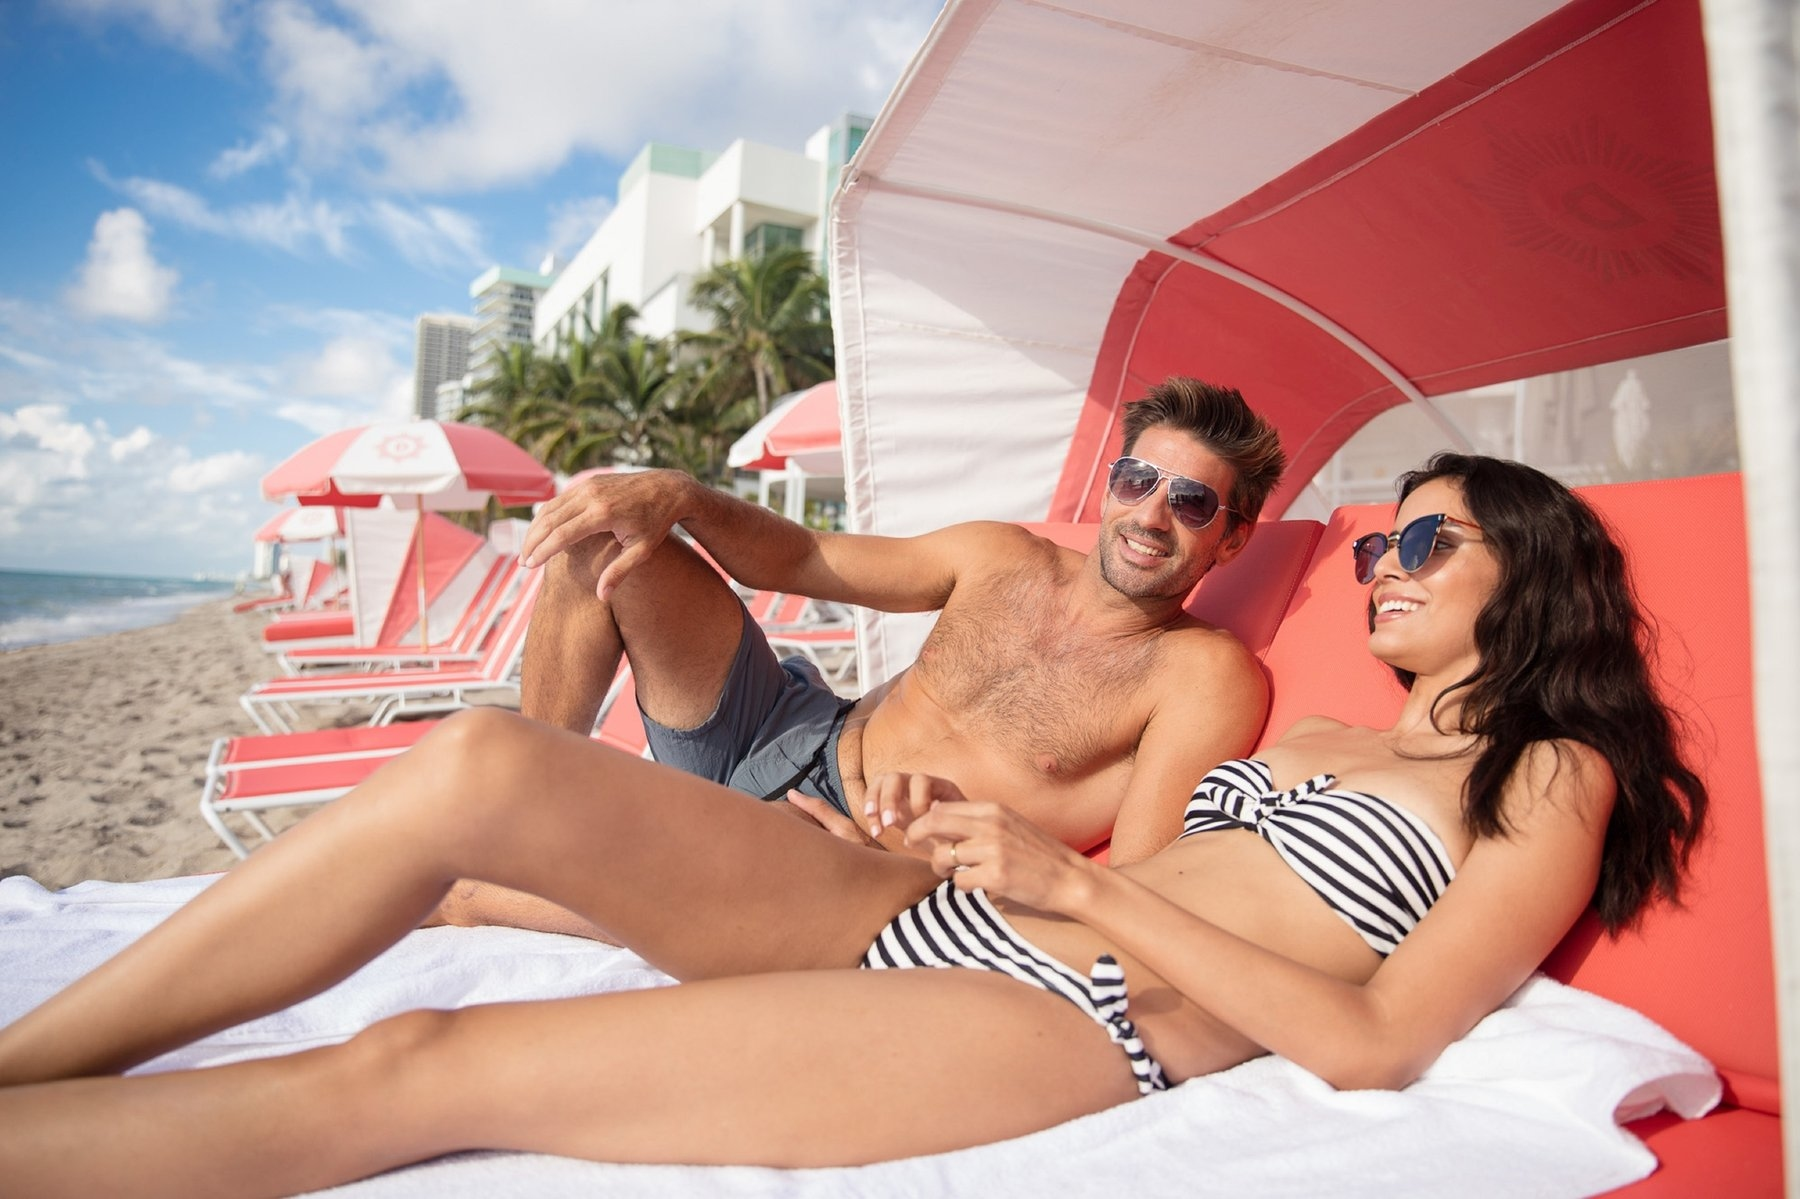 Couples in a Cabana - The Diplomat Beach Resort, Miami, FL